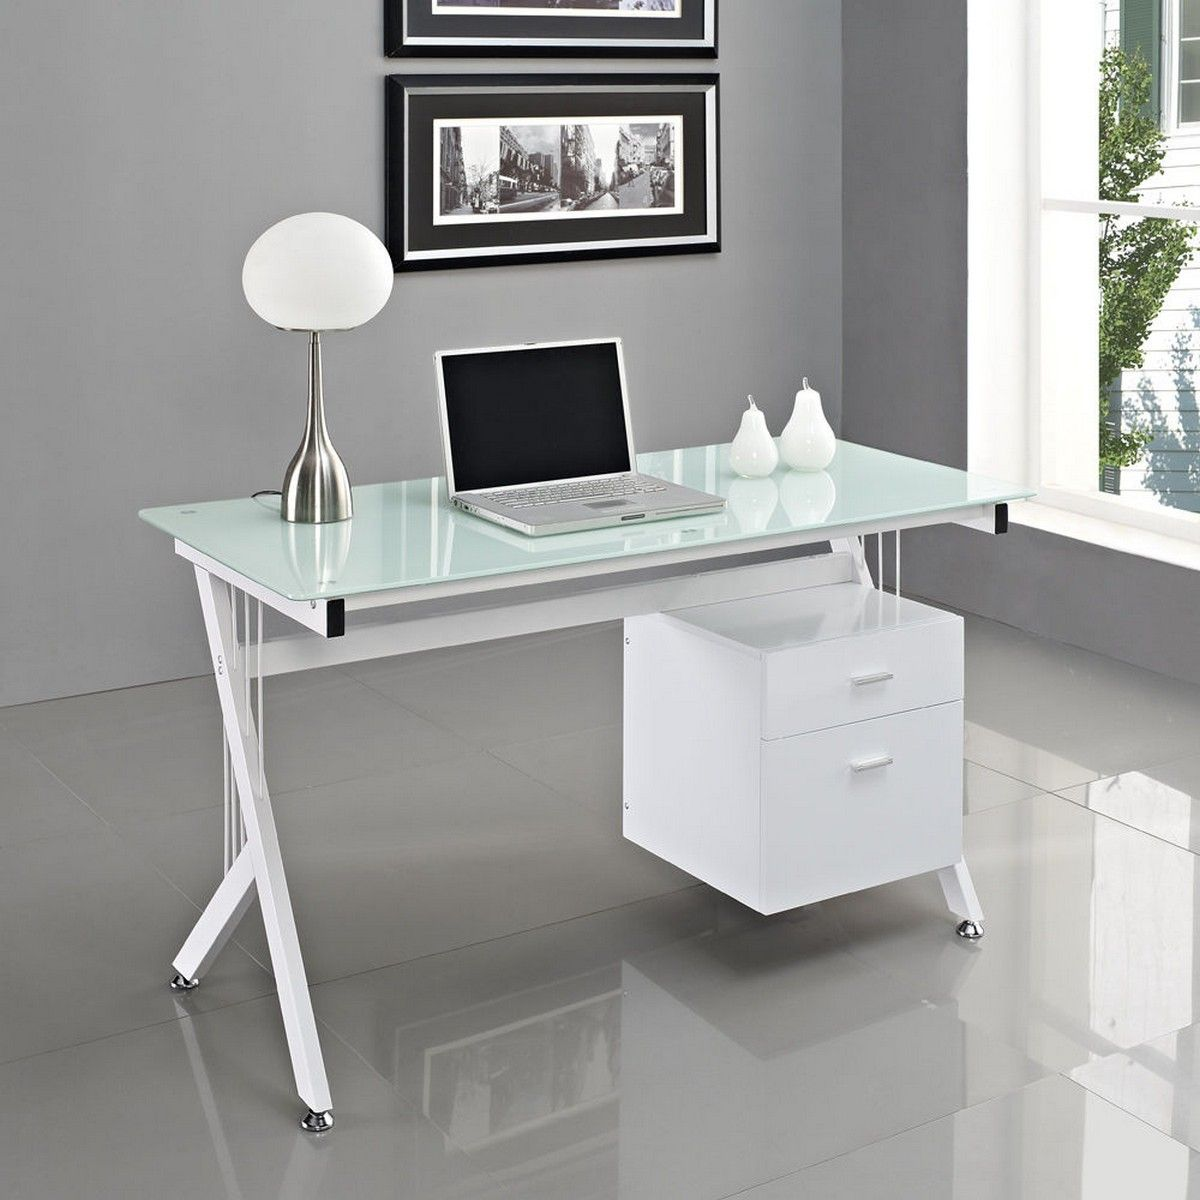 ea75fe6a7c9 White Glass Computer Desk PC Table Home Office